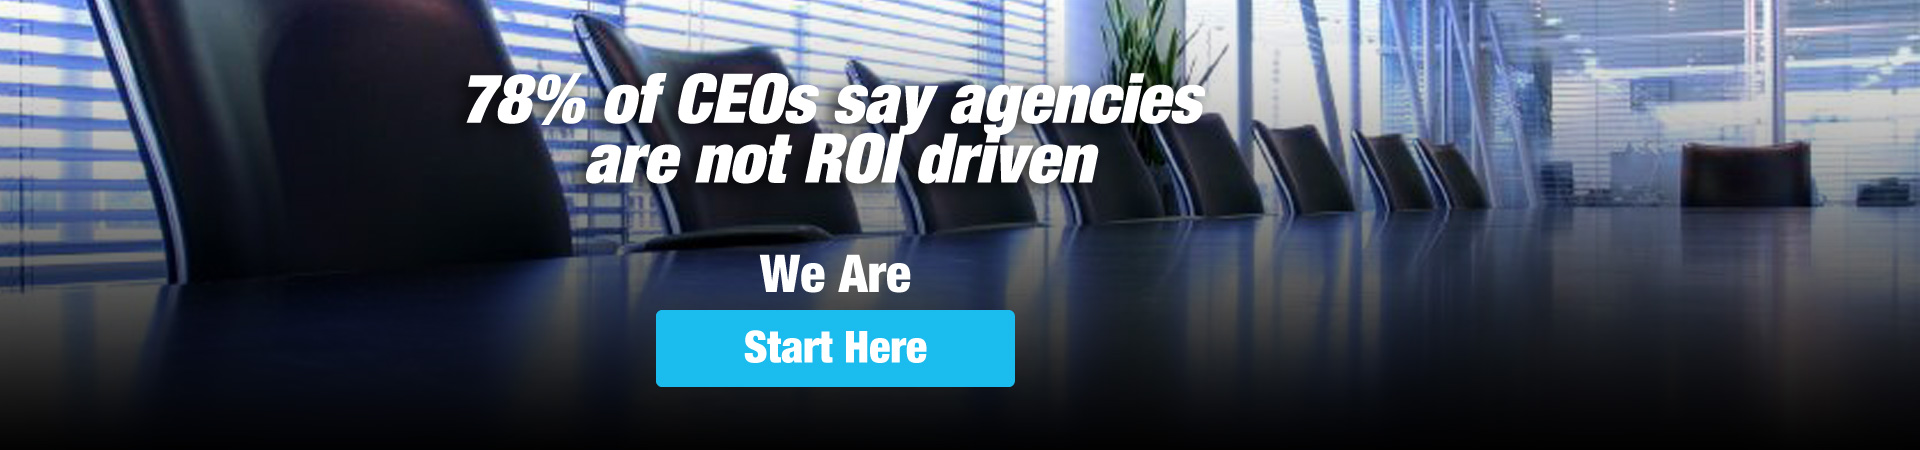 ROI-Baltimore-Agency